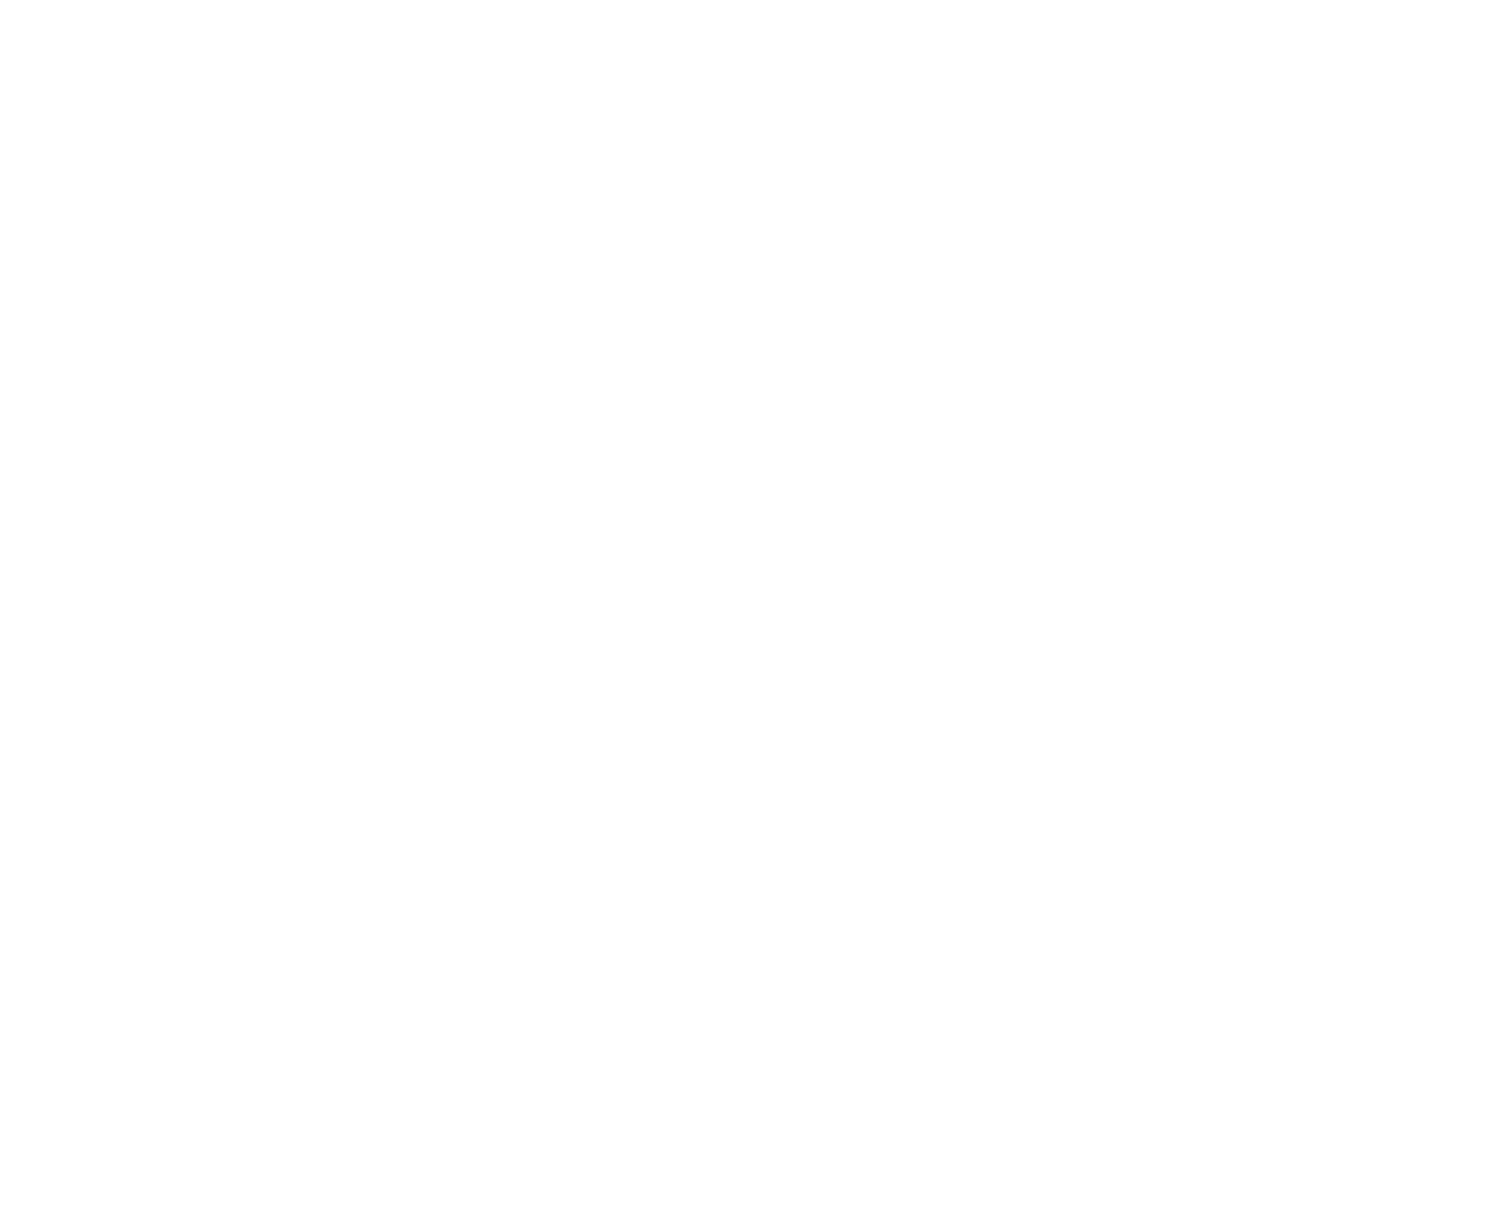 Vinderen Sushi & Asian dining